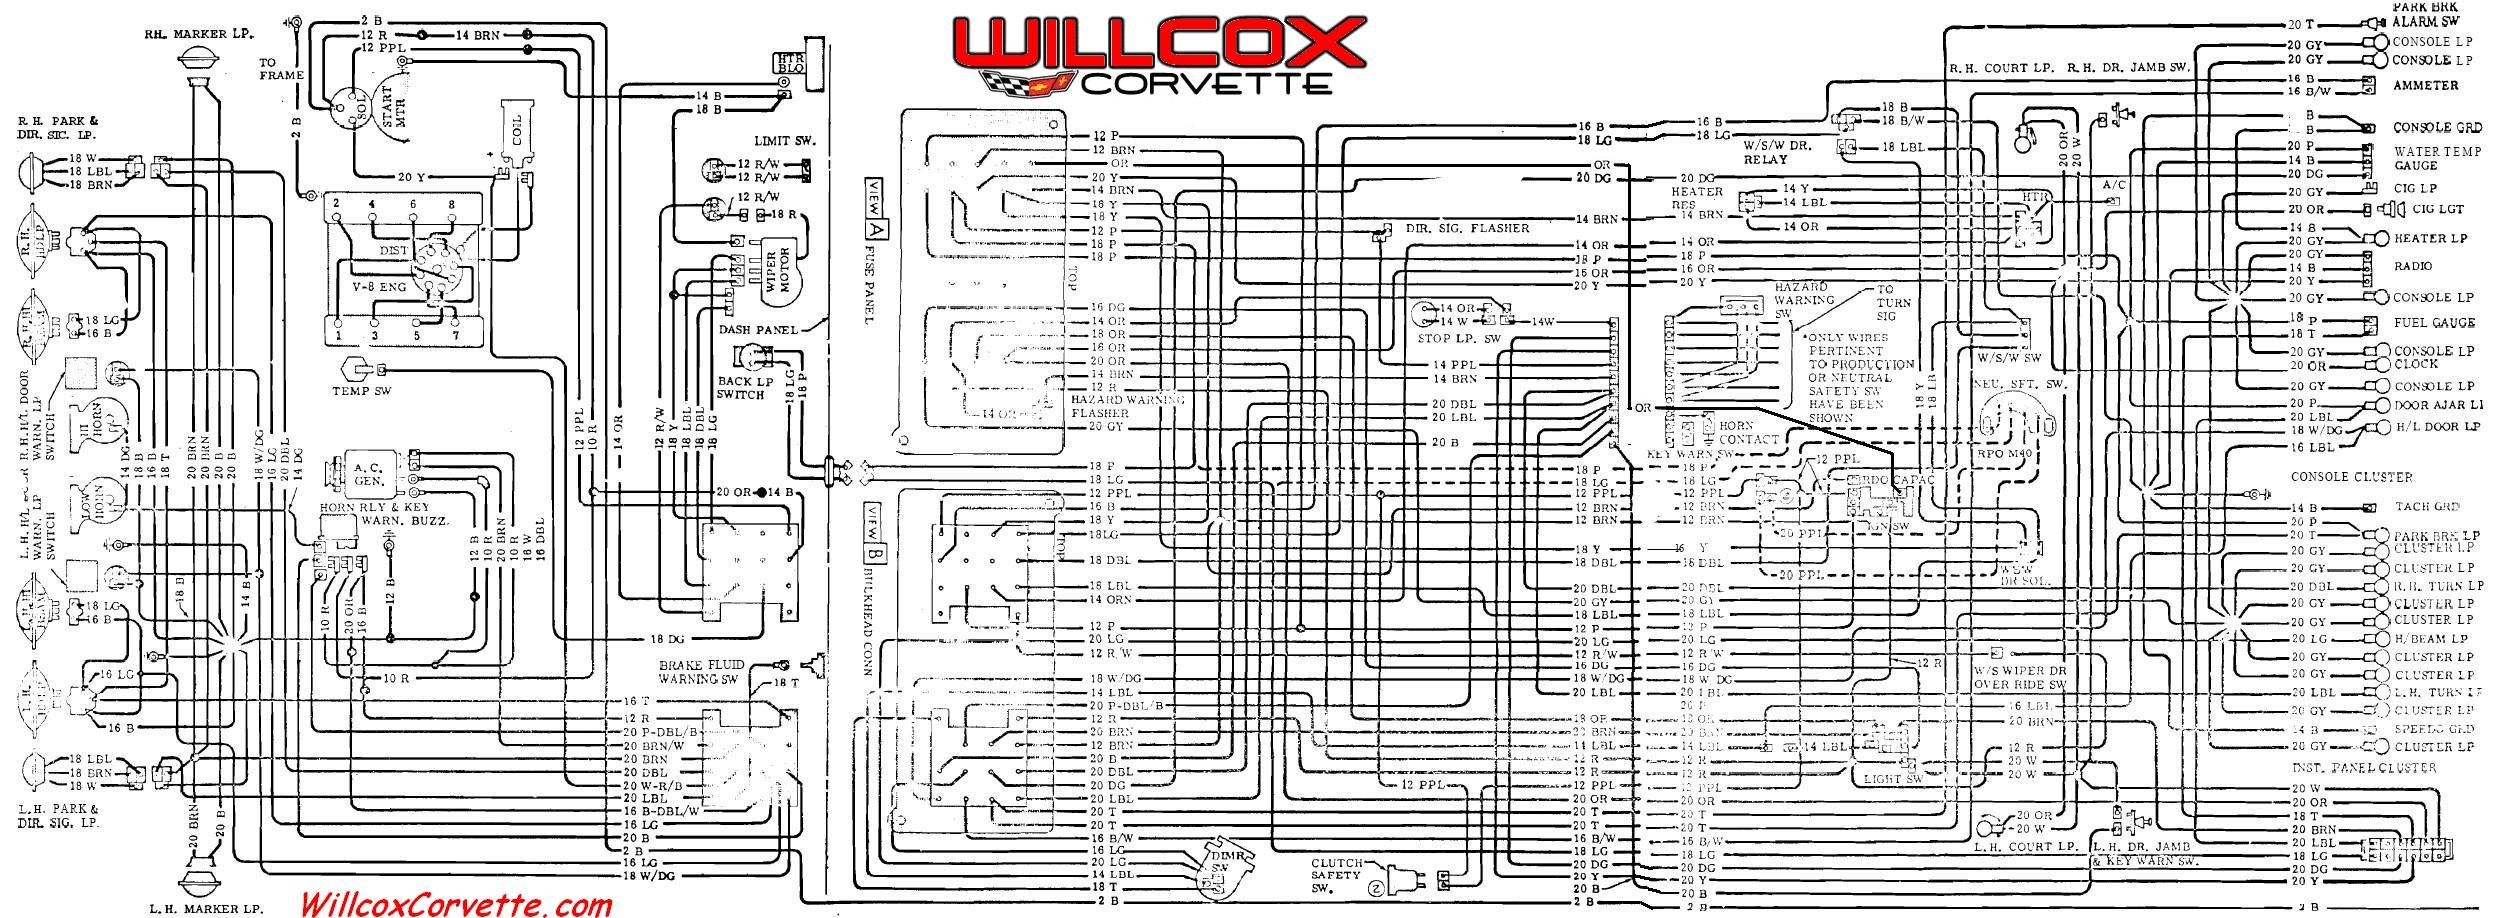 69 corvette wiring diagram wiring diagram log 1969 corvette wiring diagram free 1969 corvette wiring diagram free [ 2500 x 918 Pixel ]